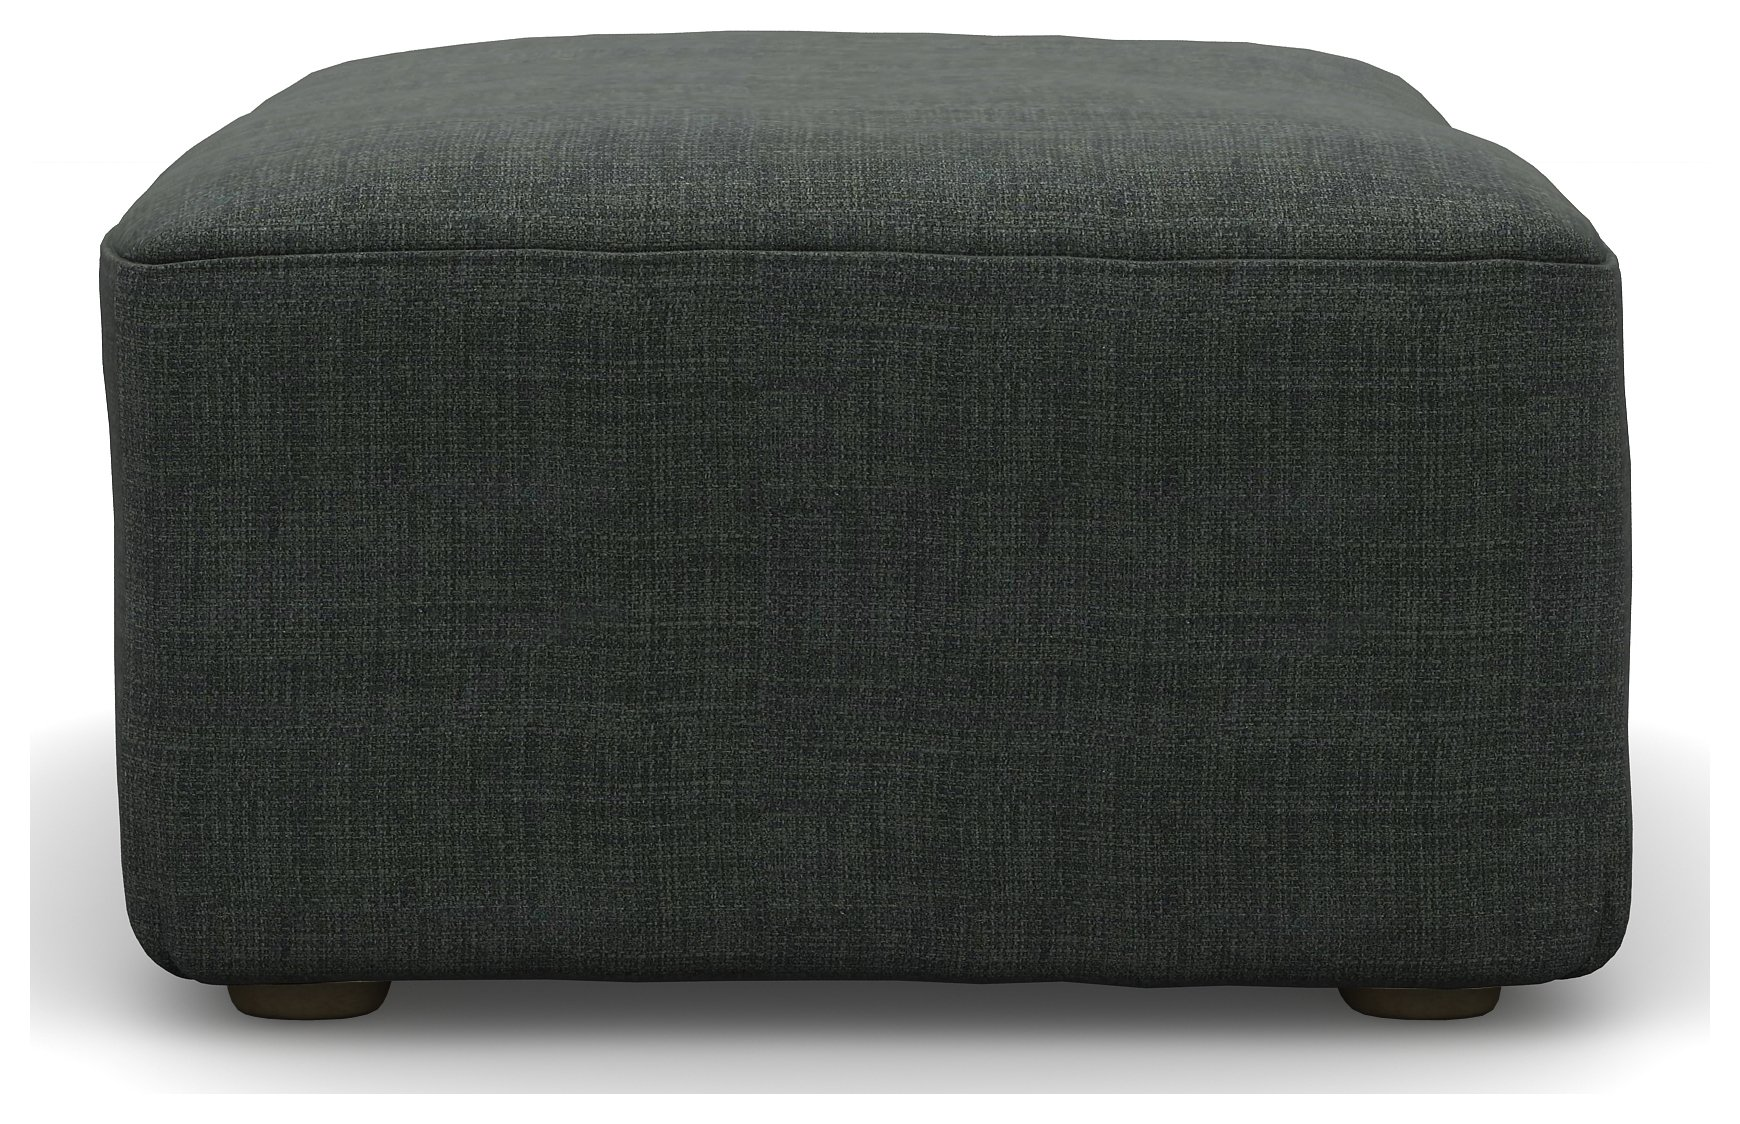 Heart of House Lincoln Fabric Footstool - Dark Charcoal.